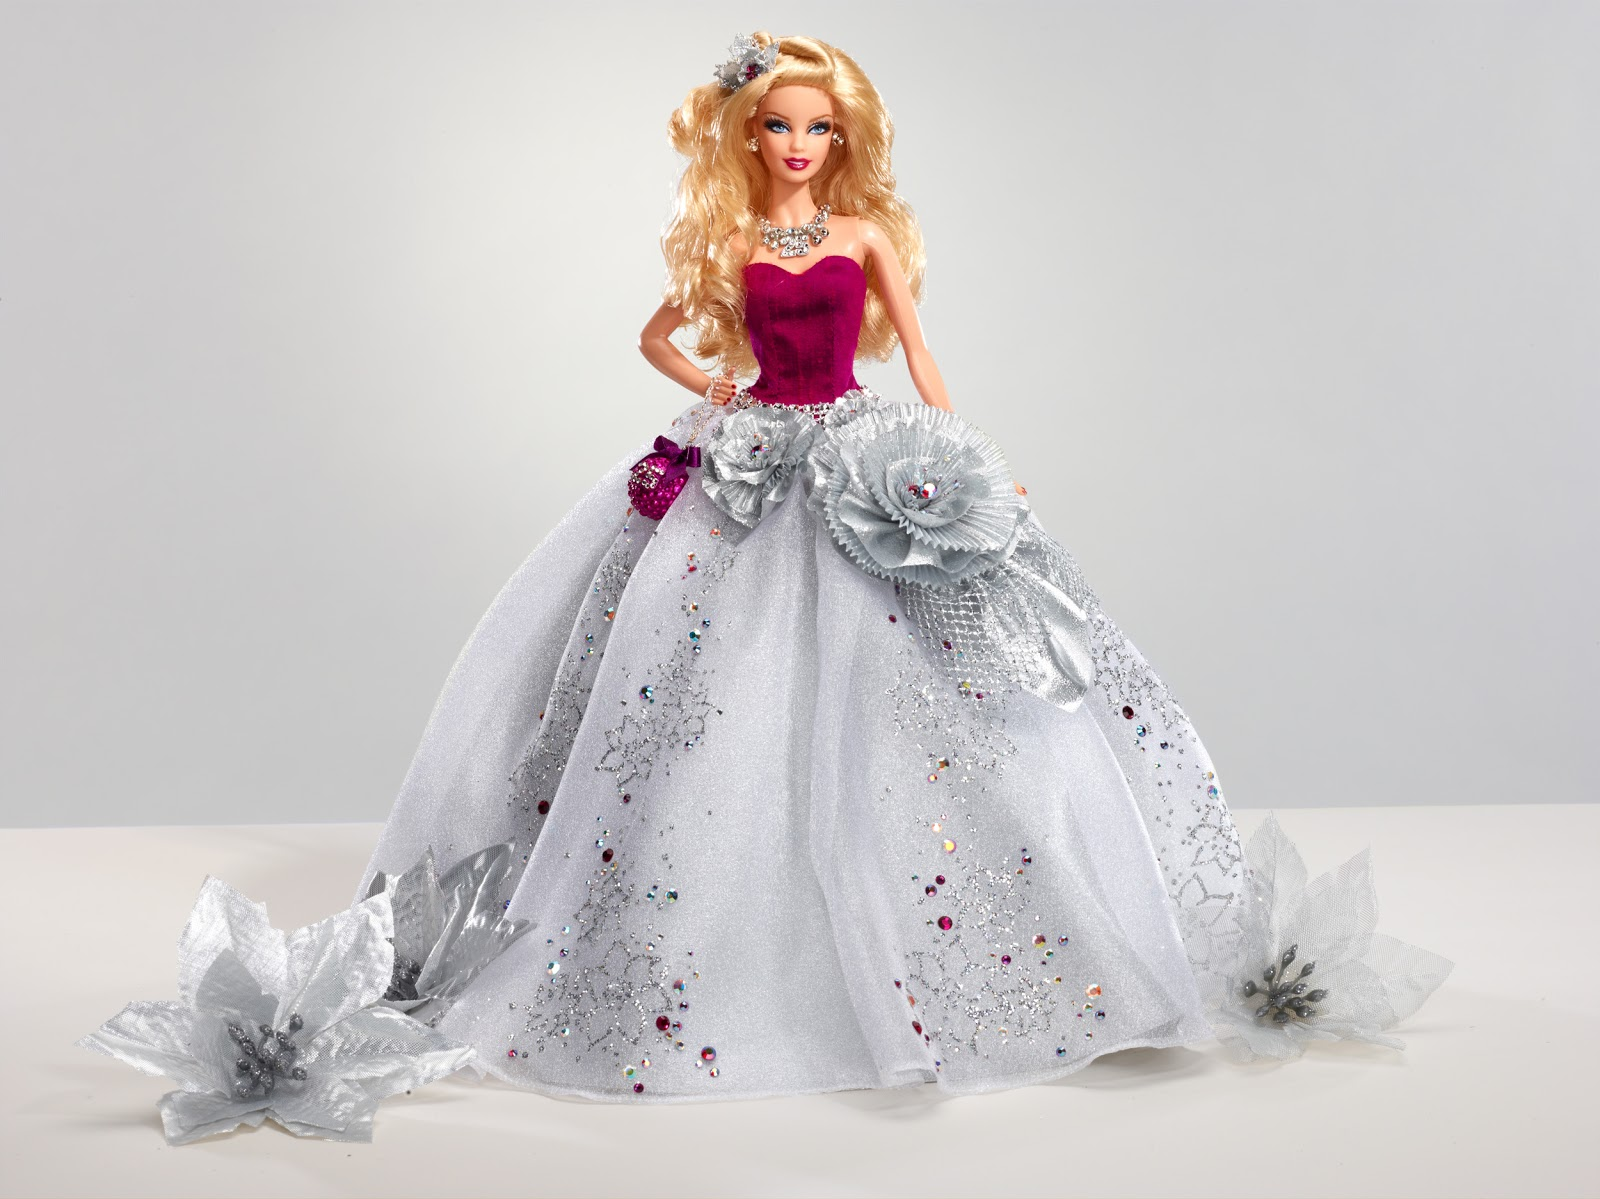 AROUND THE WORLD - BY DIVA QUEEN: Barbie's Divine Design ...